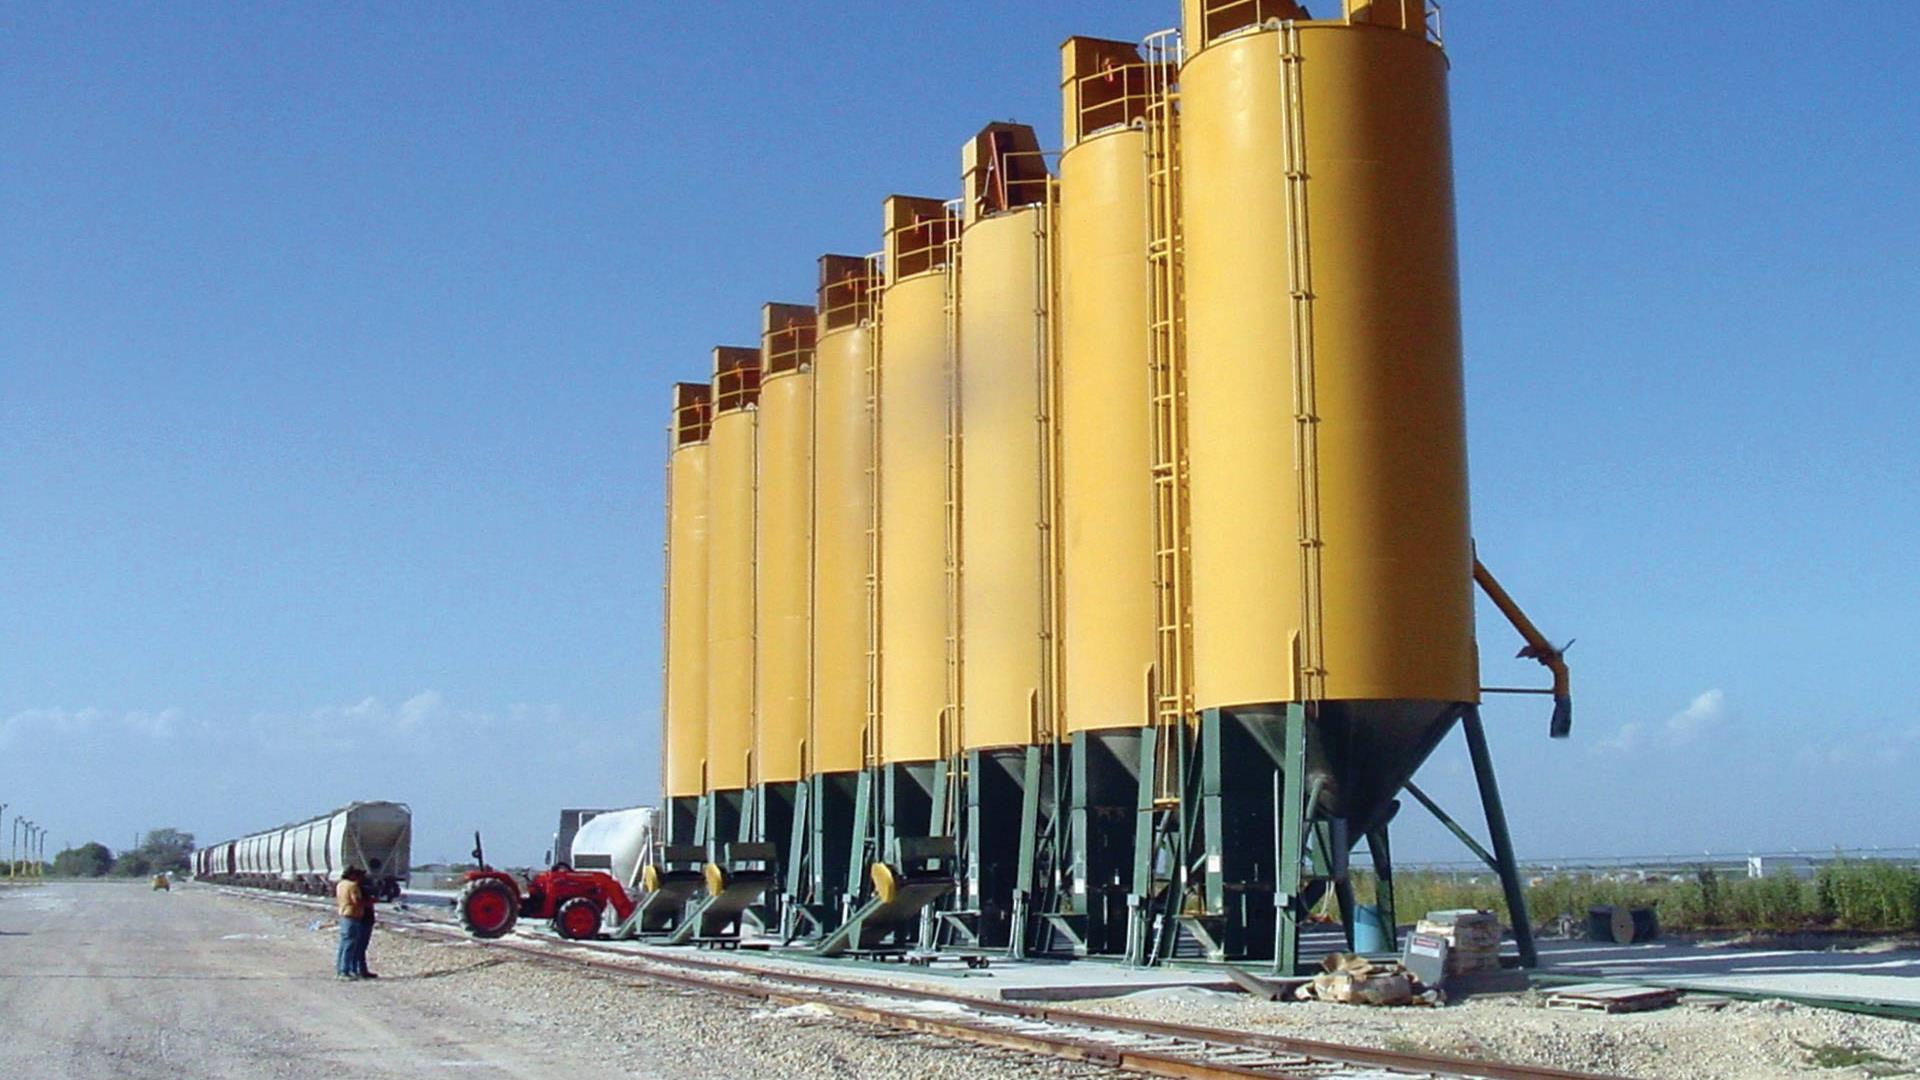 A row of storage APPCO E-Tanks